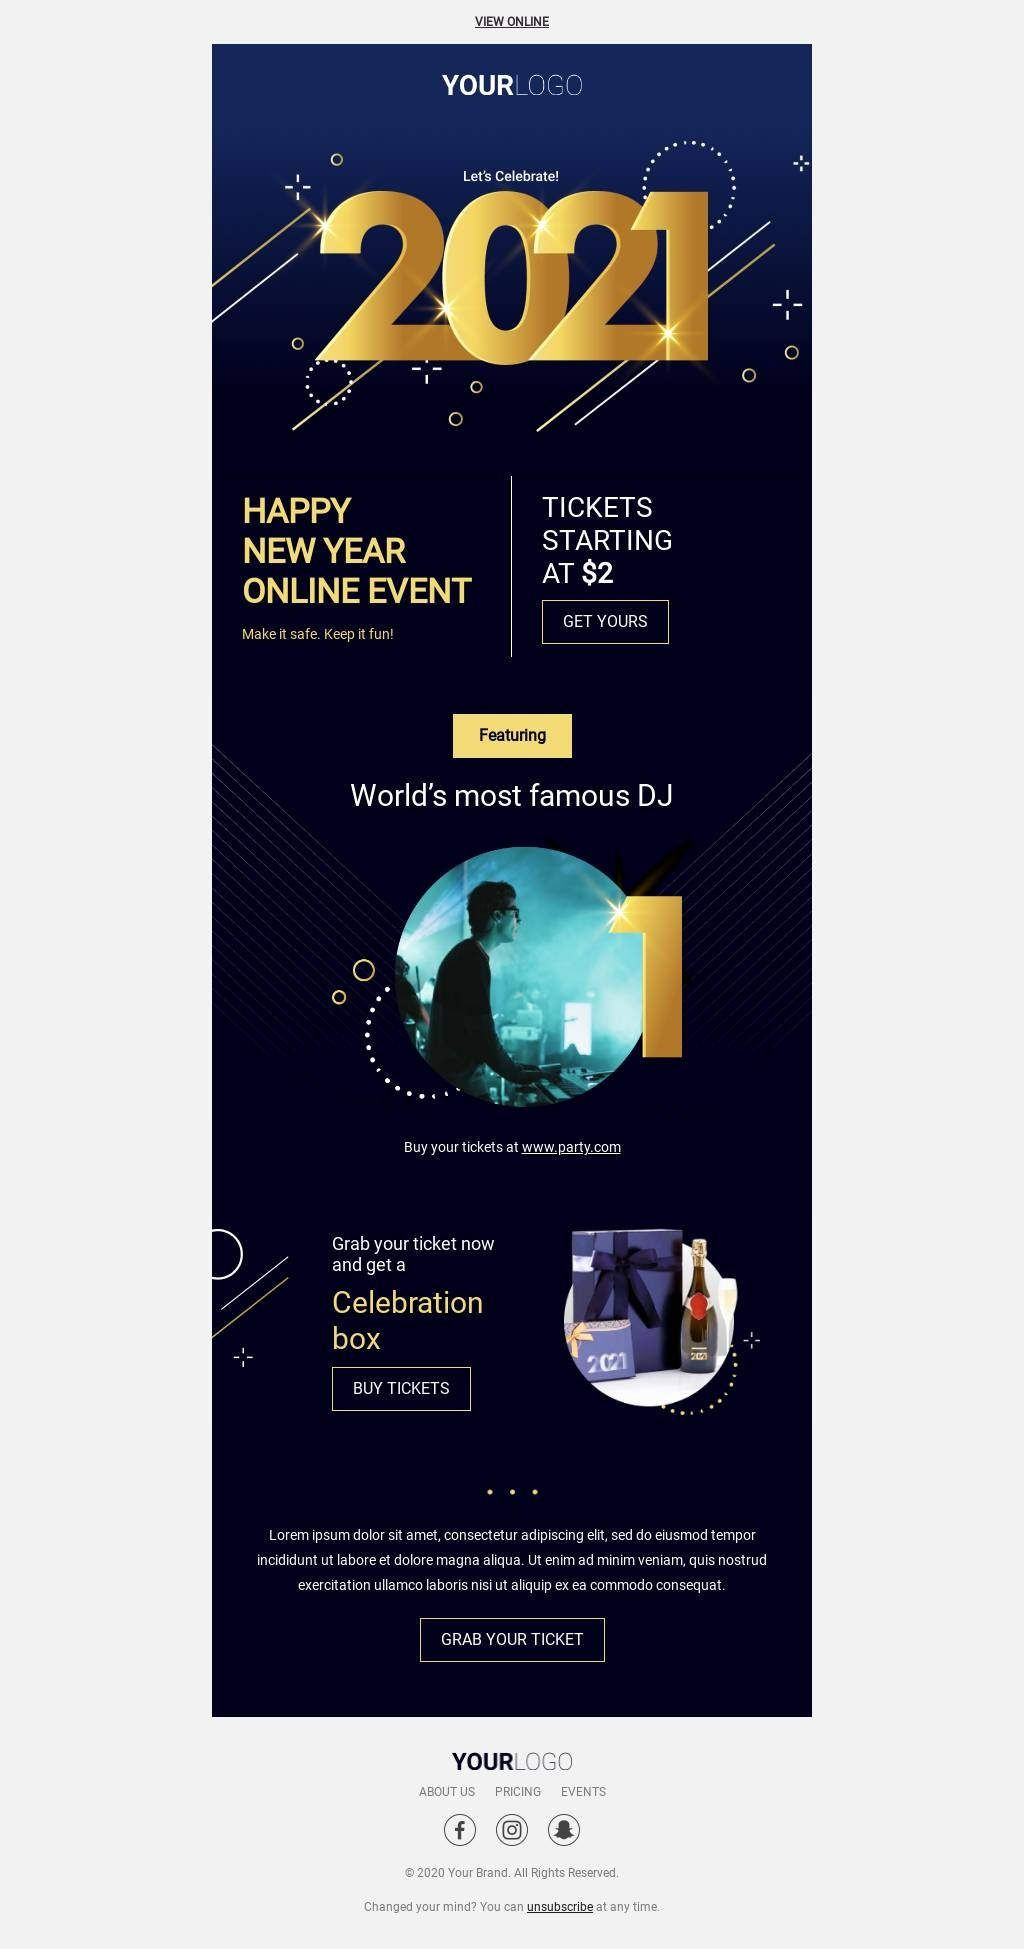 Template Bee Free Email Template Design Online Event Celebration Box